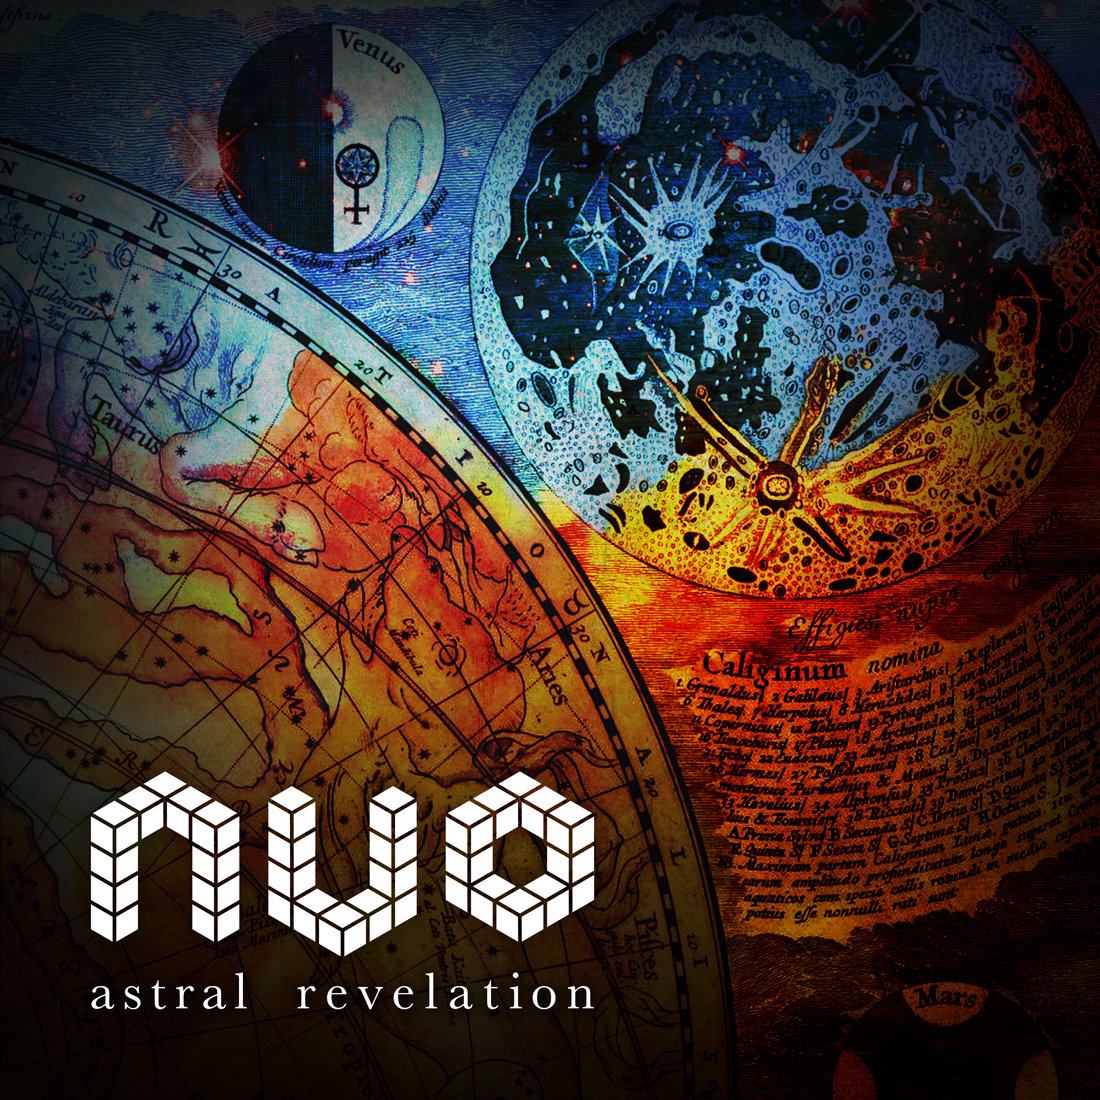 NVO - Astral Revelation (12 Inch Remix) @ 'Astral Revelation' album (deep house, electro house)